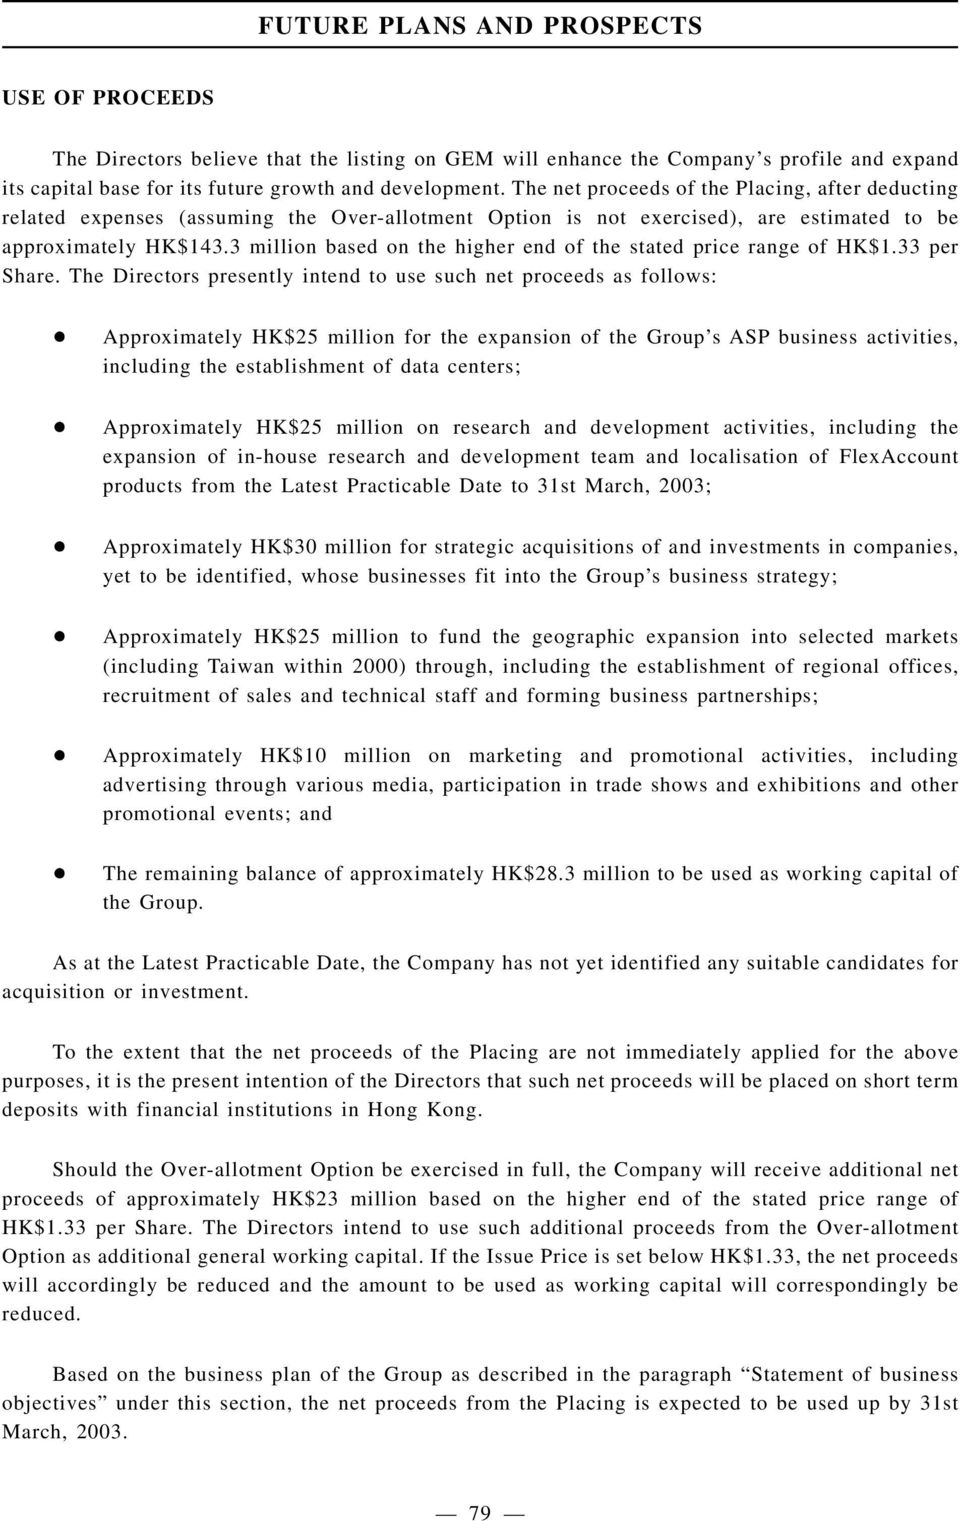 3 million based on the higher end of the stated price range of HK$1.33 per Share. The Directors presently intend to use such net proceeds as follows: App 1A.1 App 1A.